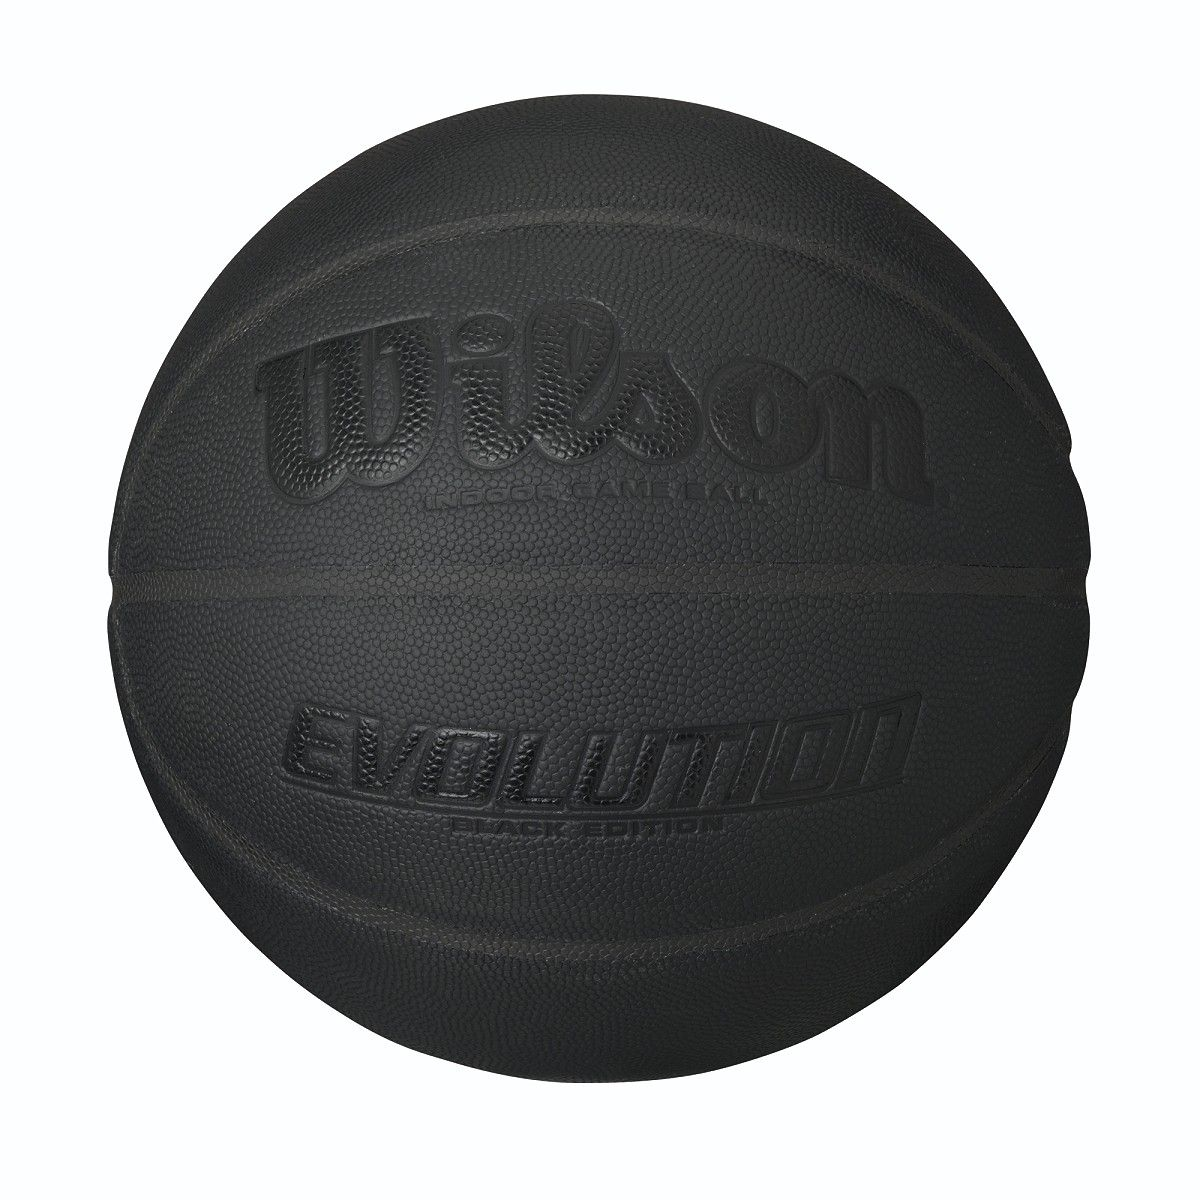 Wilson Evolution Black Edition Game Ball Black Wilson Basketball Wilson Basketball Wilson Basketball Basketball Black Edition